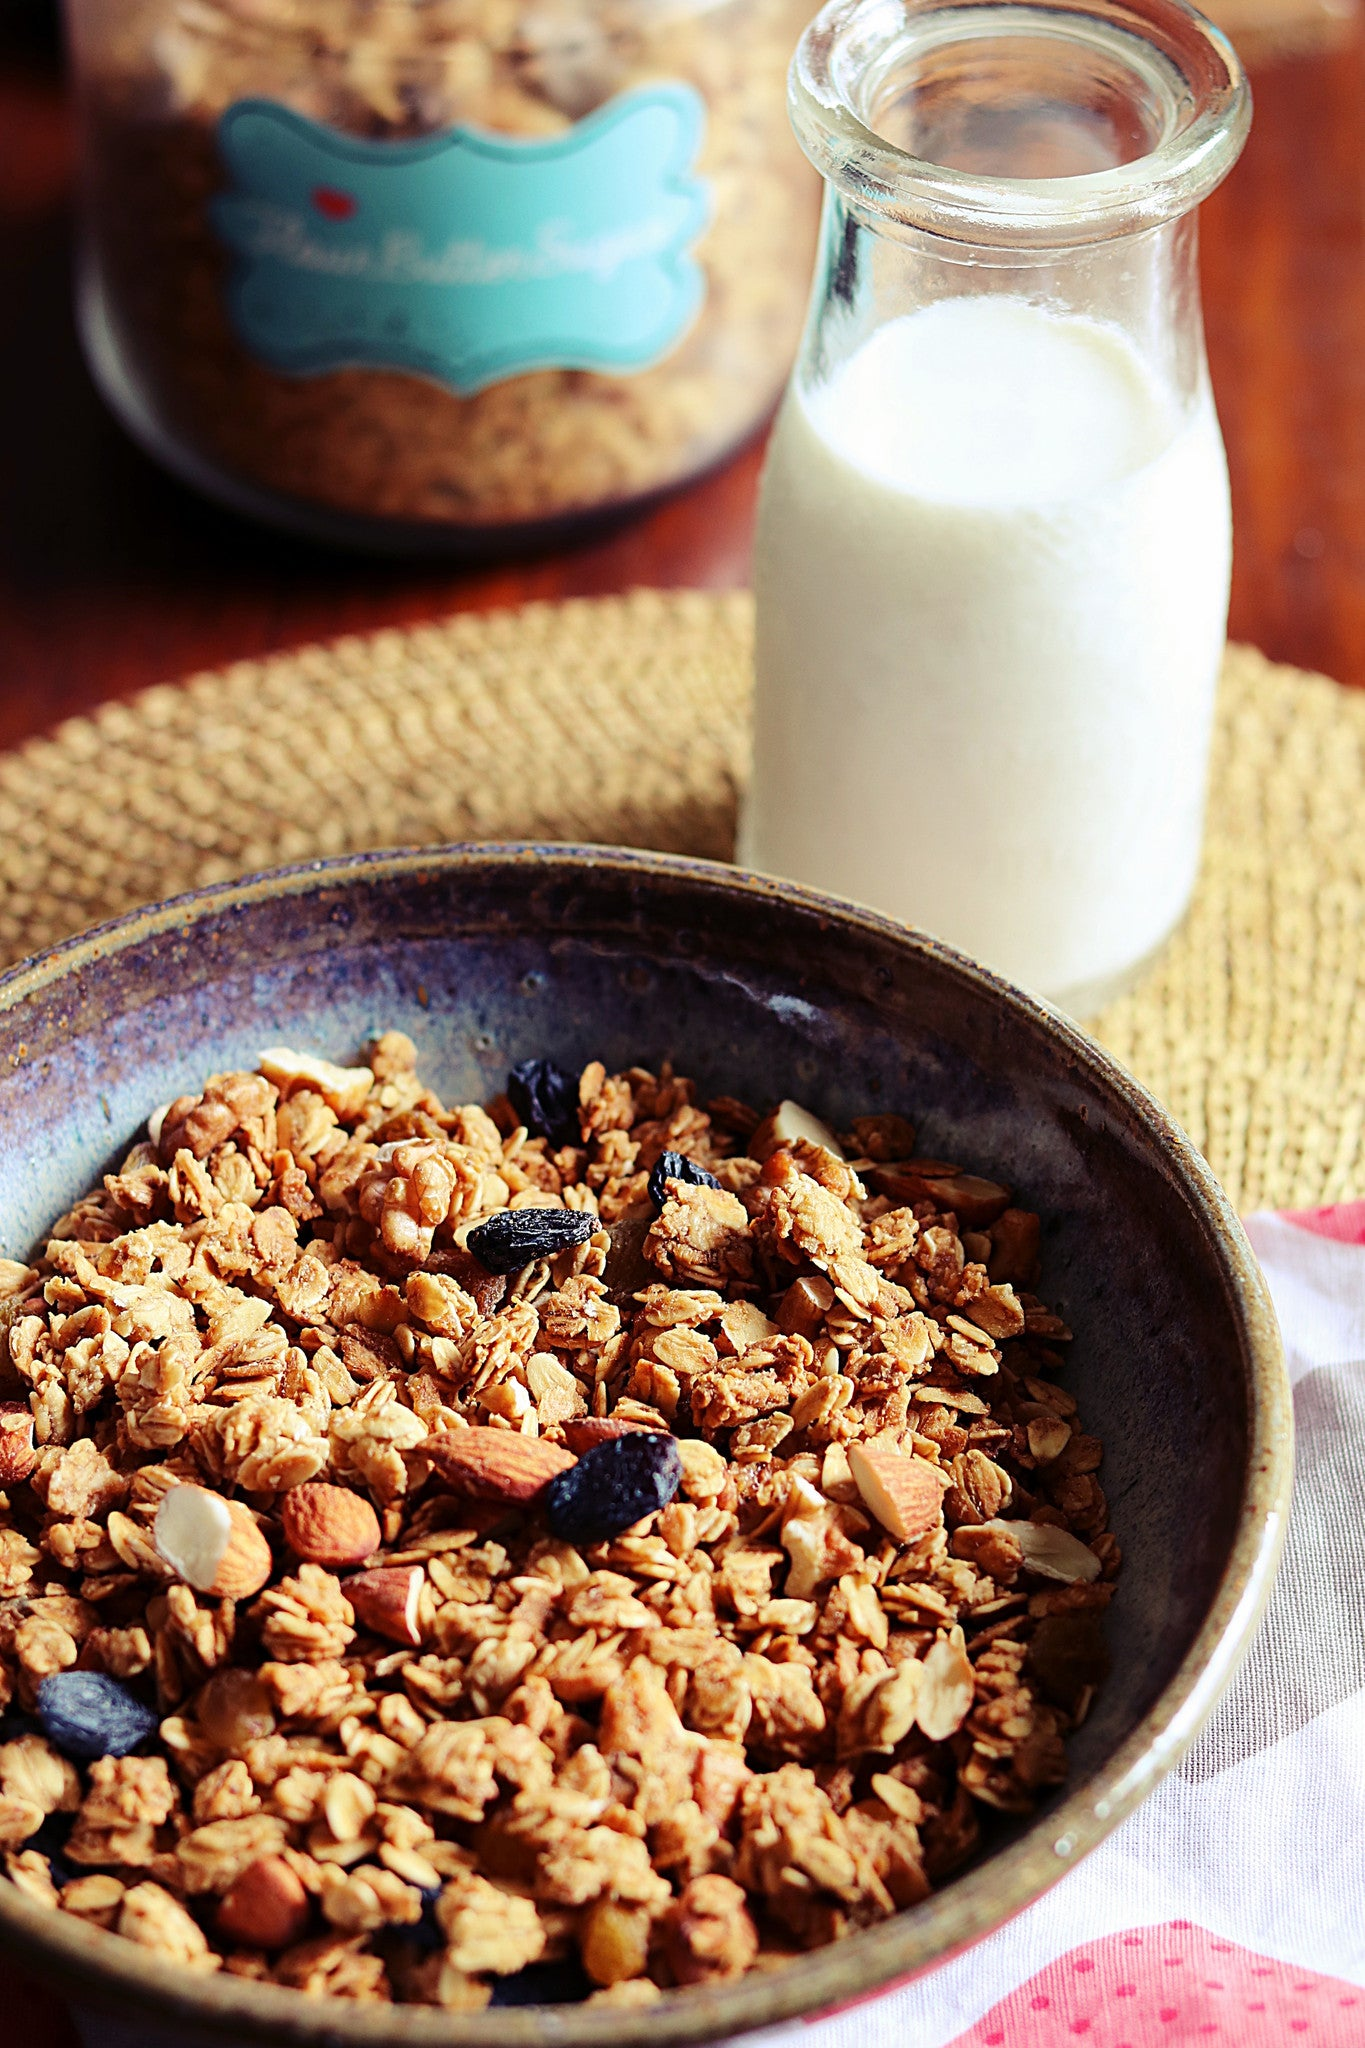 Almond Walnut & Raisins Granola